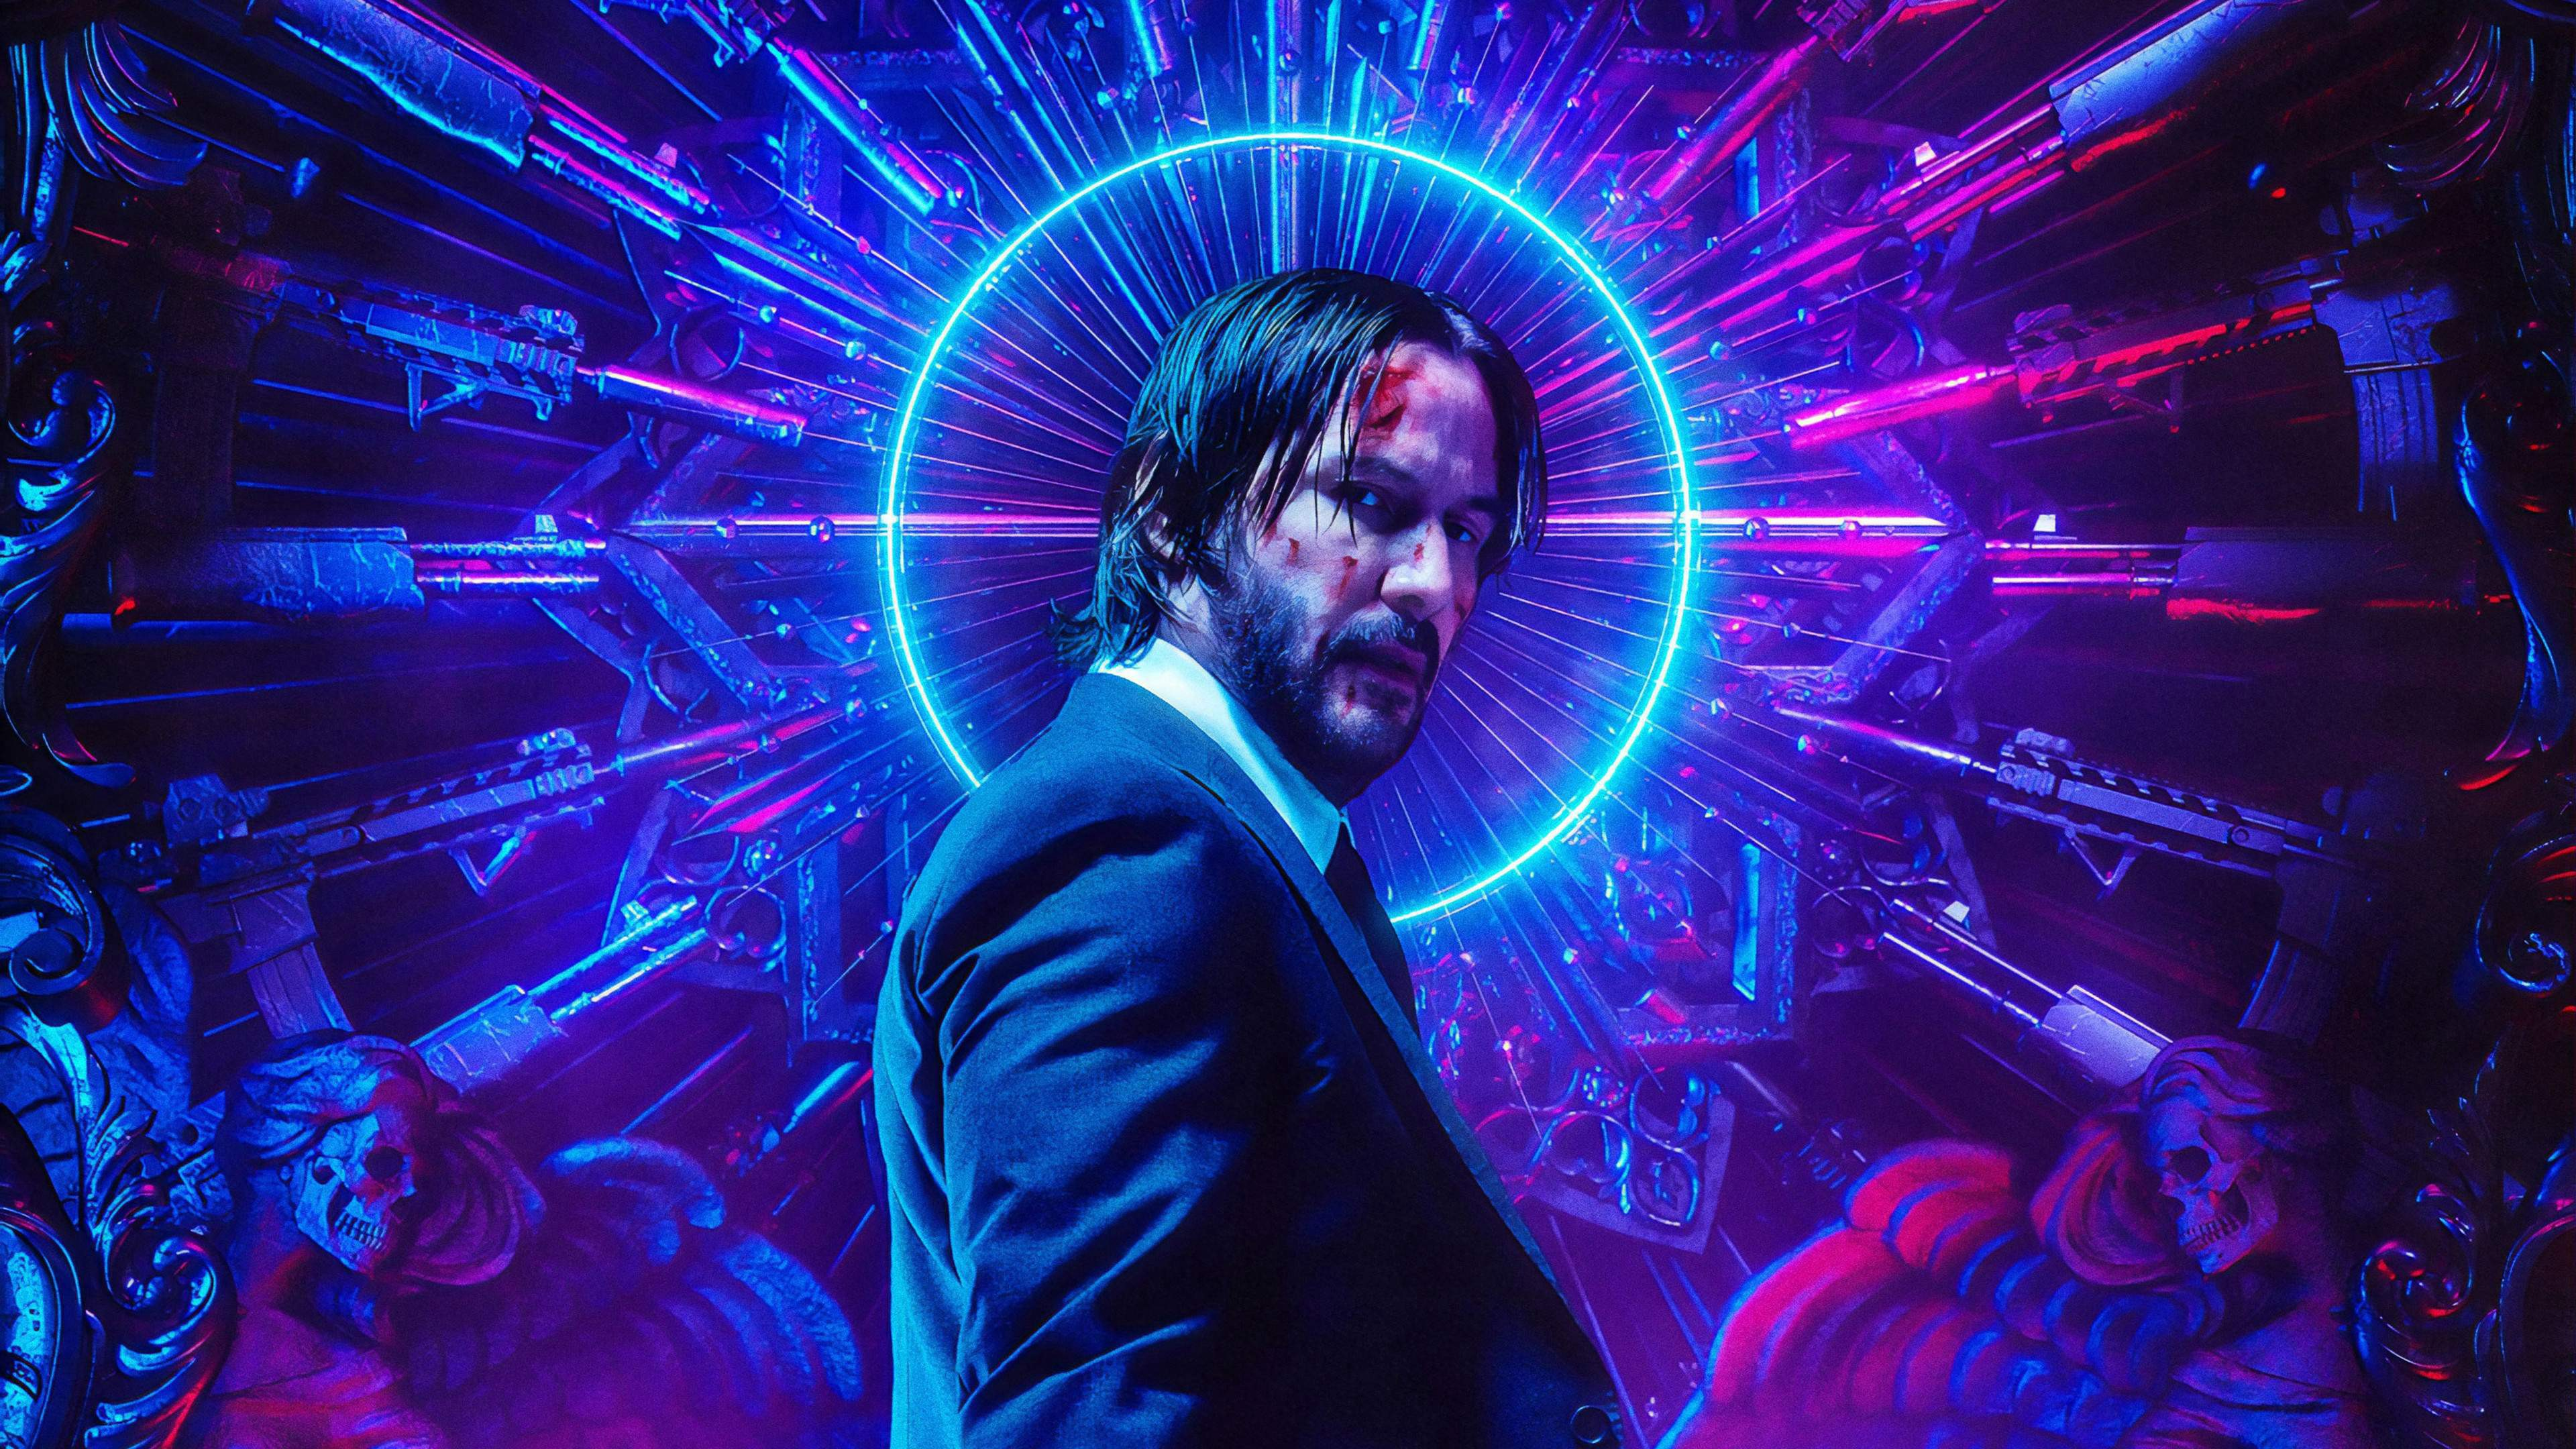 John Wick Is A Friend Of Mine This Film Franchise Helped Me Grieve By Timothy Braun Cinemania Medium